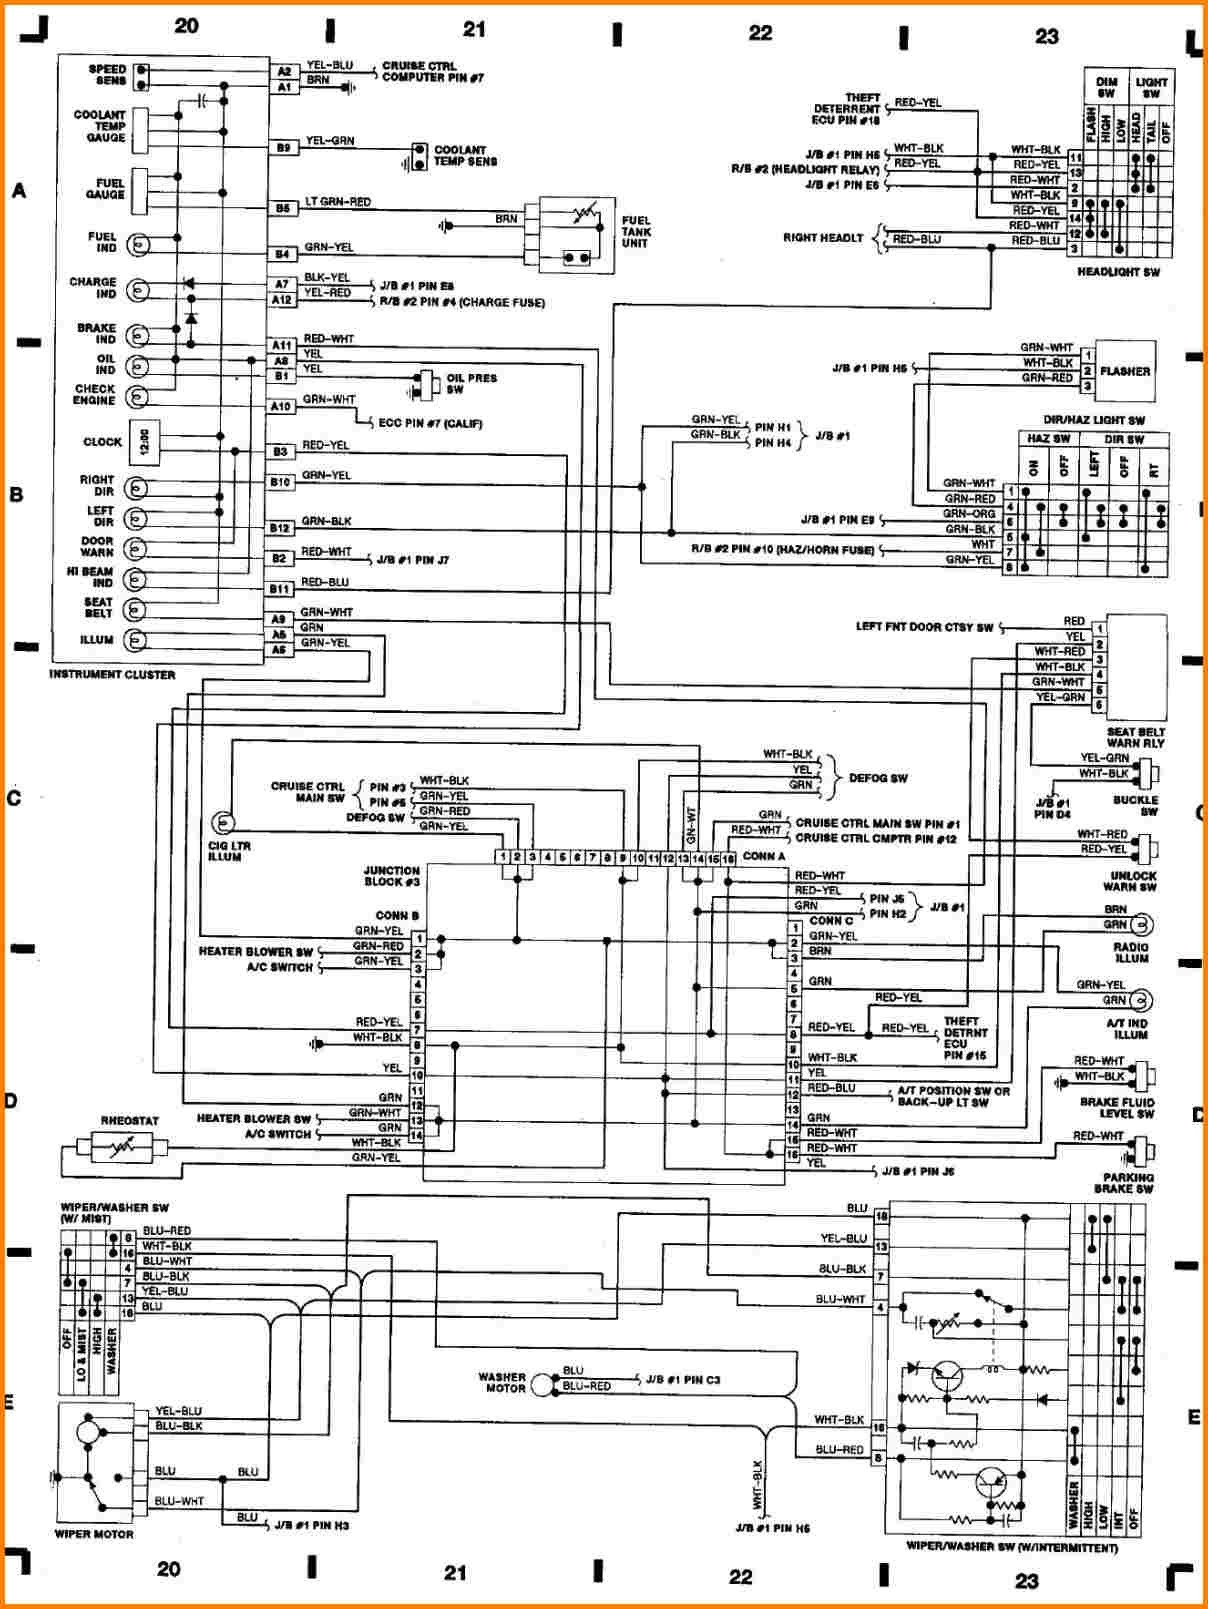 Toyota Trailer Wiring Diagram 1985 Chevy Silverado Stereo Wiring Diagram Bege Wiring Diagram